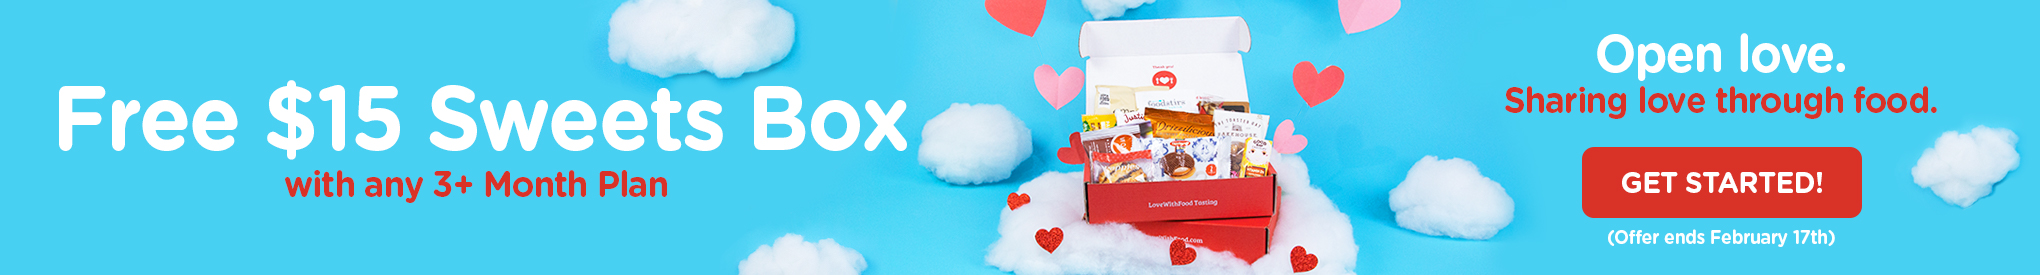 VALENTINE'S DAY SALE Get FREE Sweets Box ($15 value) with any 3-month (or longer) plan. Hurry! Offer ends 2/17/19.